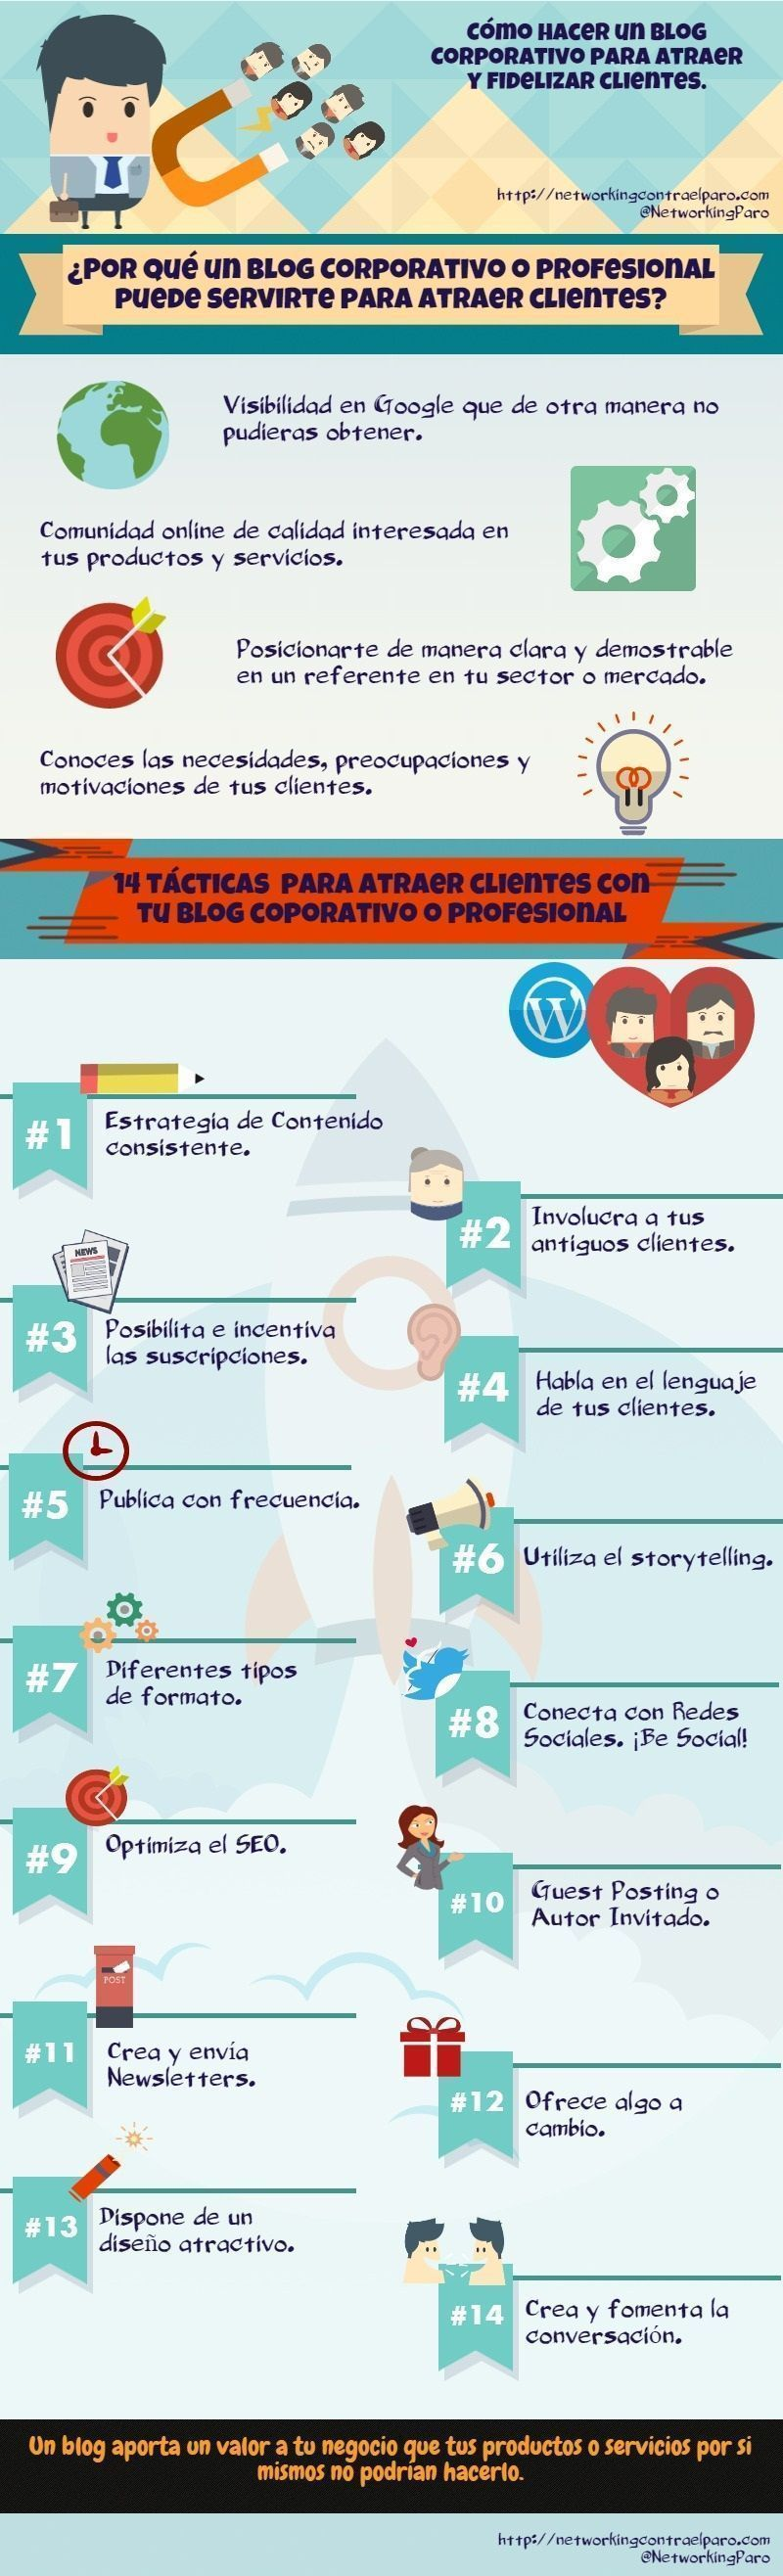 blog-corporativo-captar-clientes